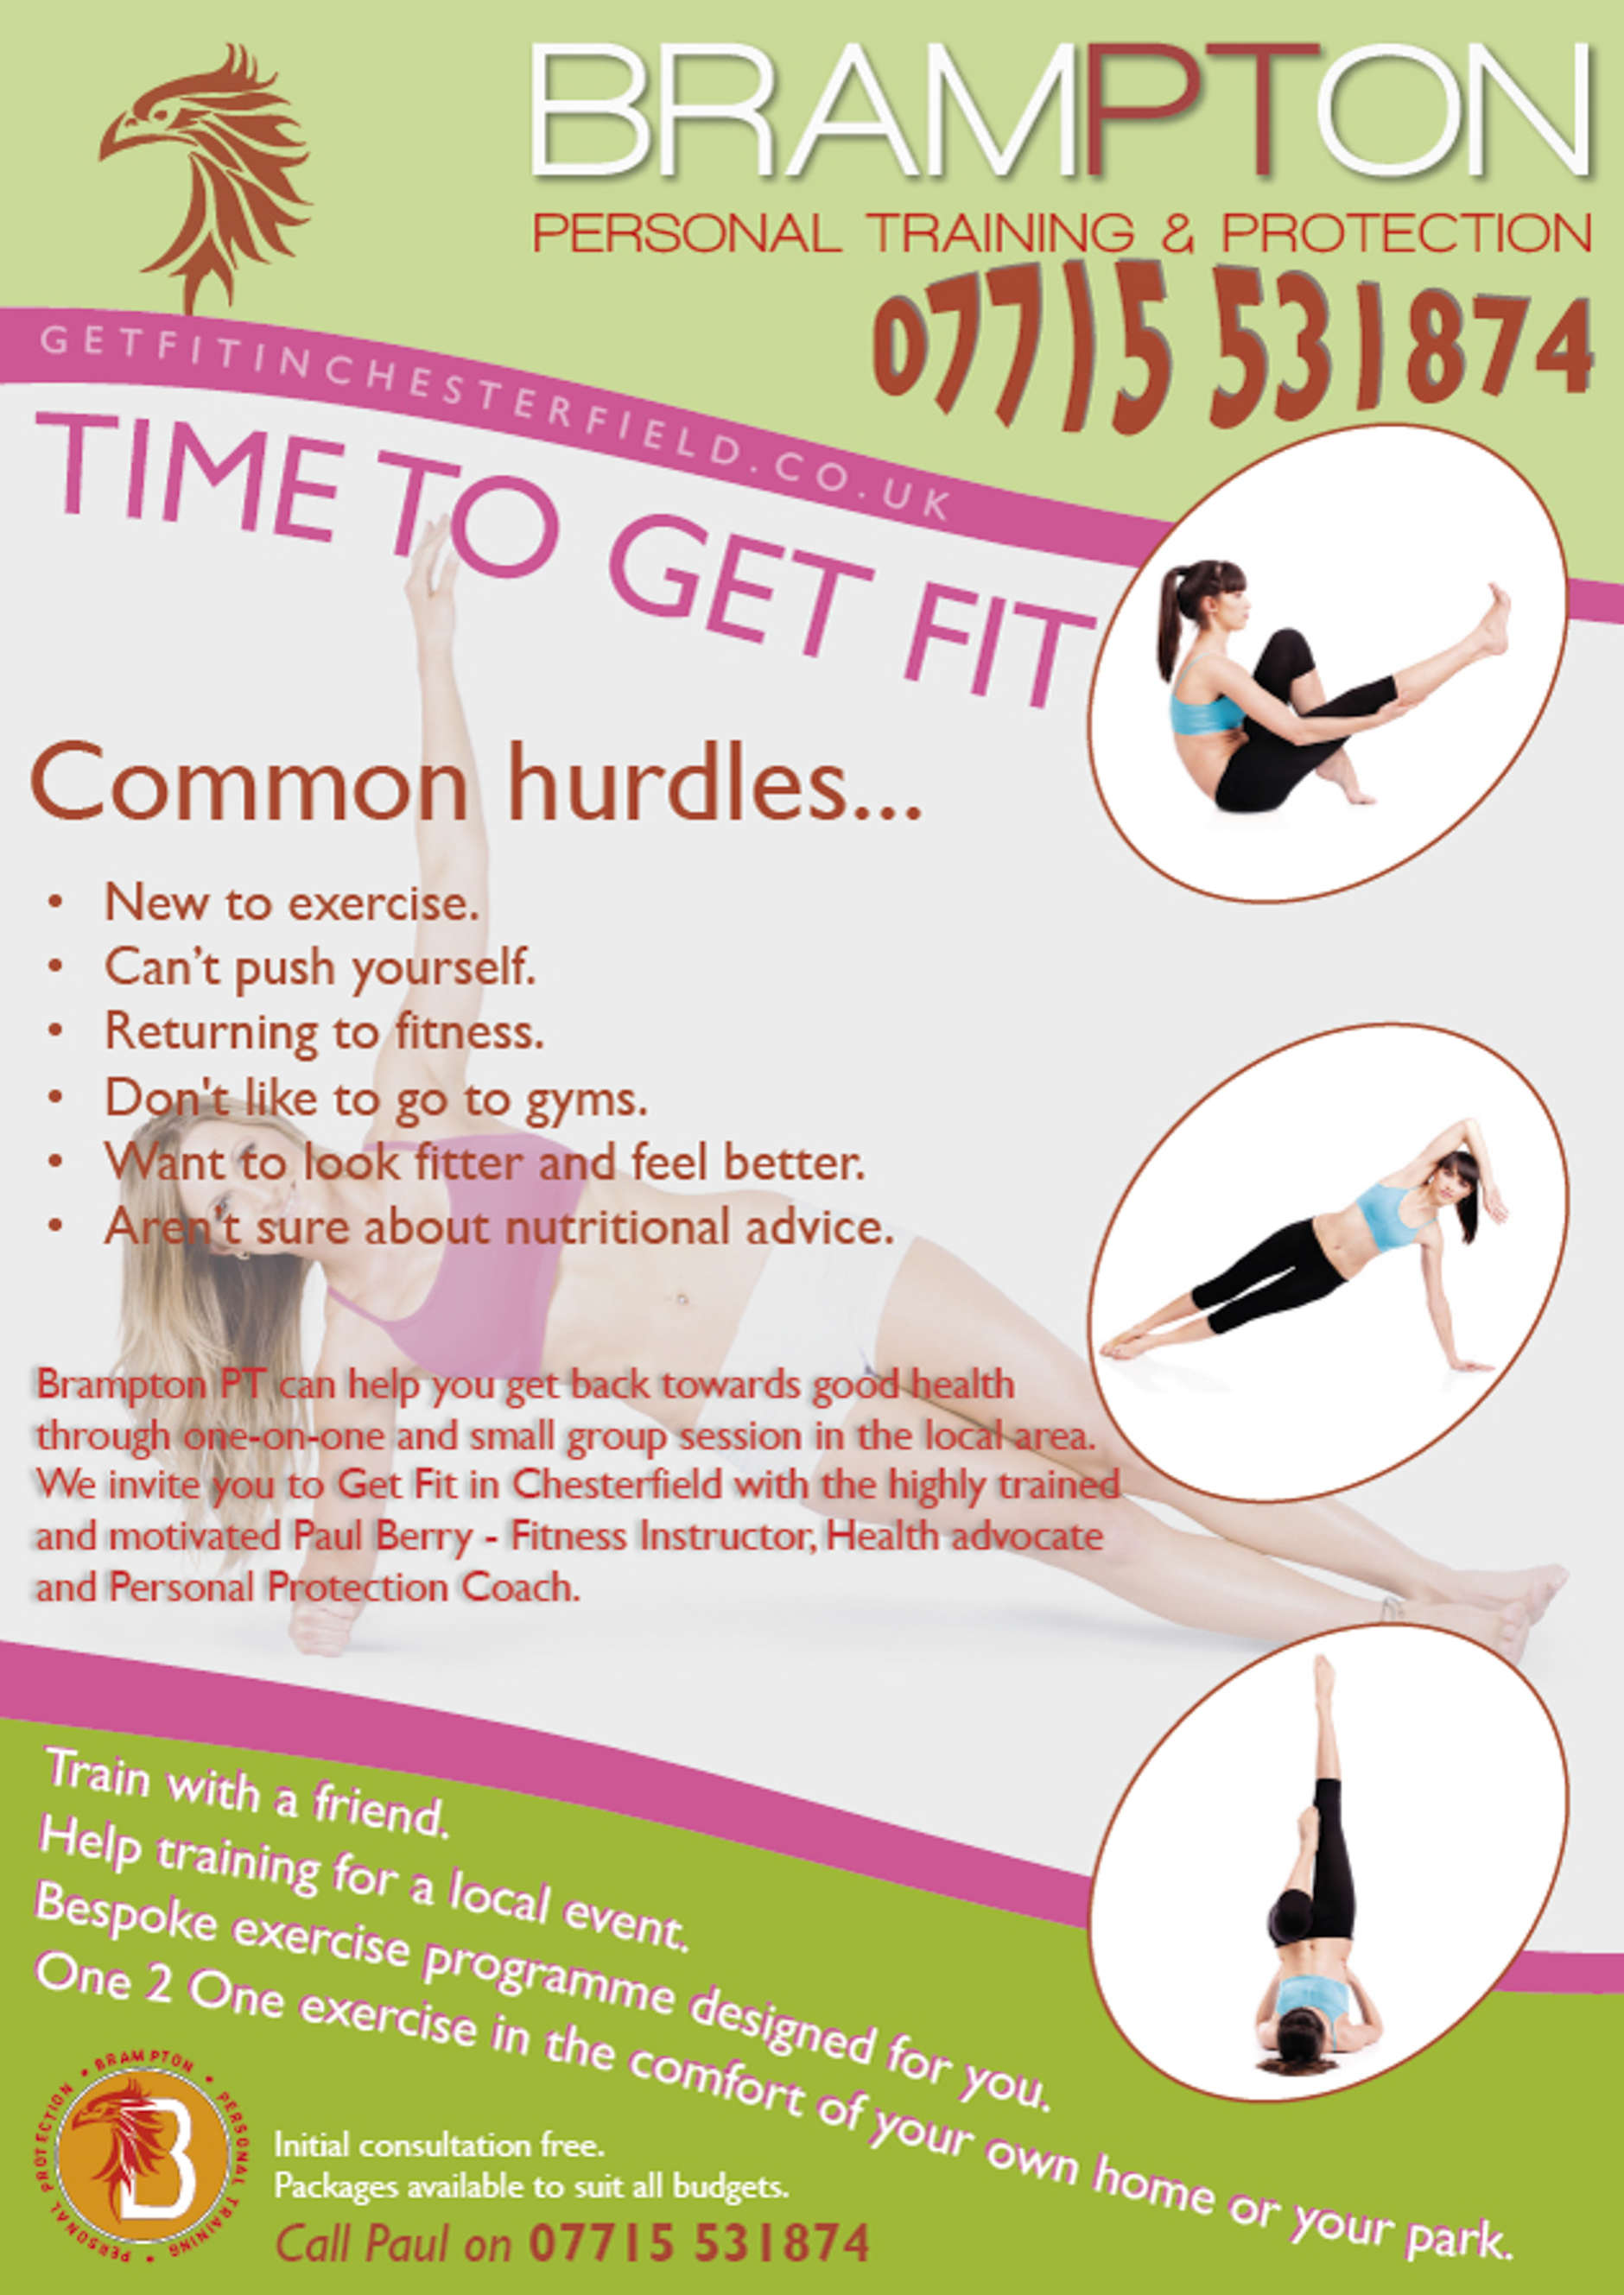 Annual Leaflet for Fitness Trainer based in Chesterfield